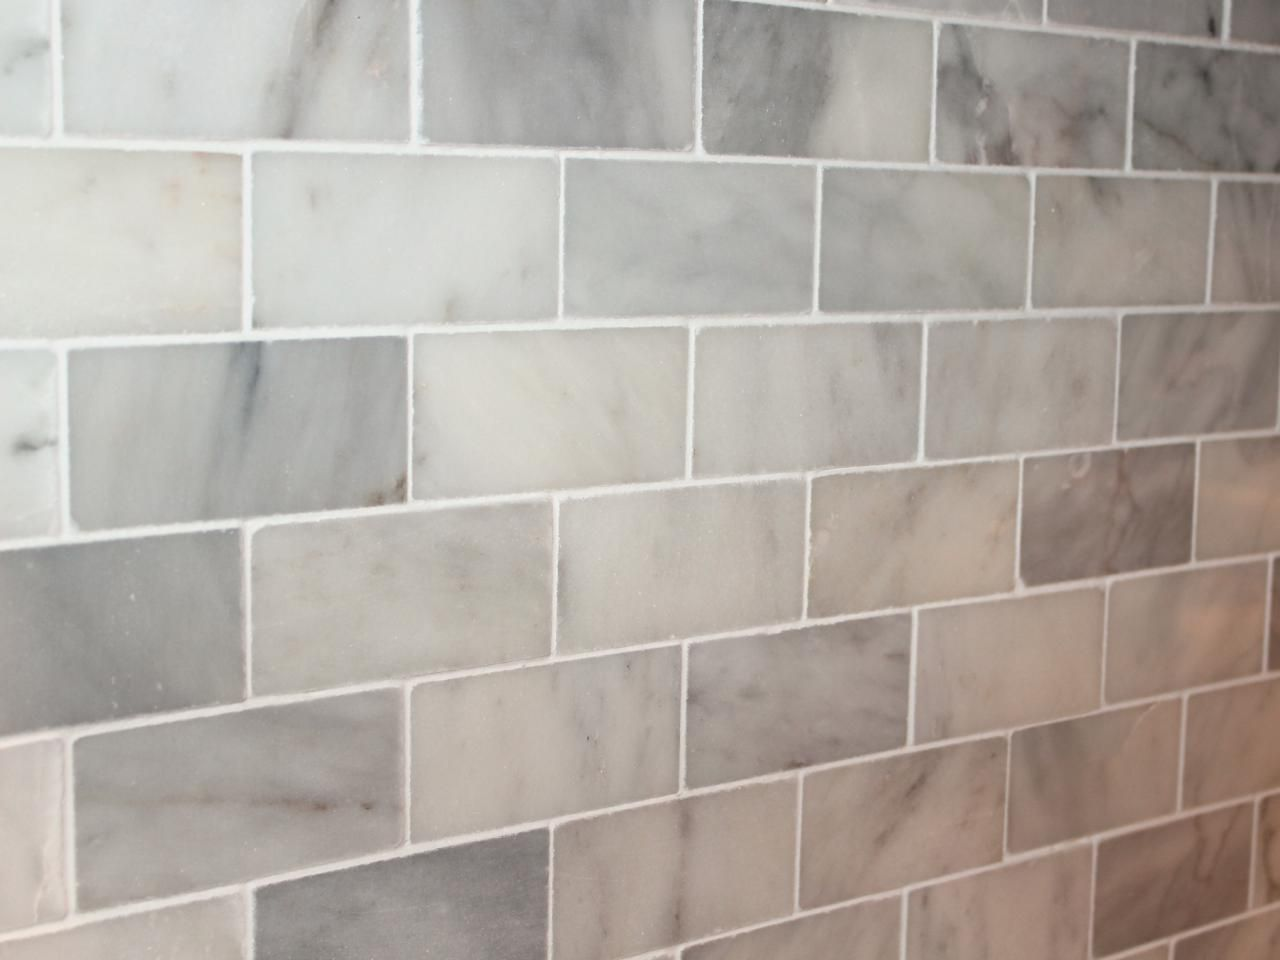 Photos of white and gray marble shower looks great in this white and gray marble shower looks great in this kitchen im converted from white to marble for bathroom pinterest marble subway tiles dailygadgetfo Choice Image